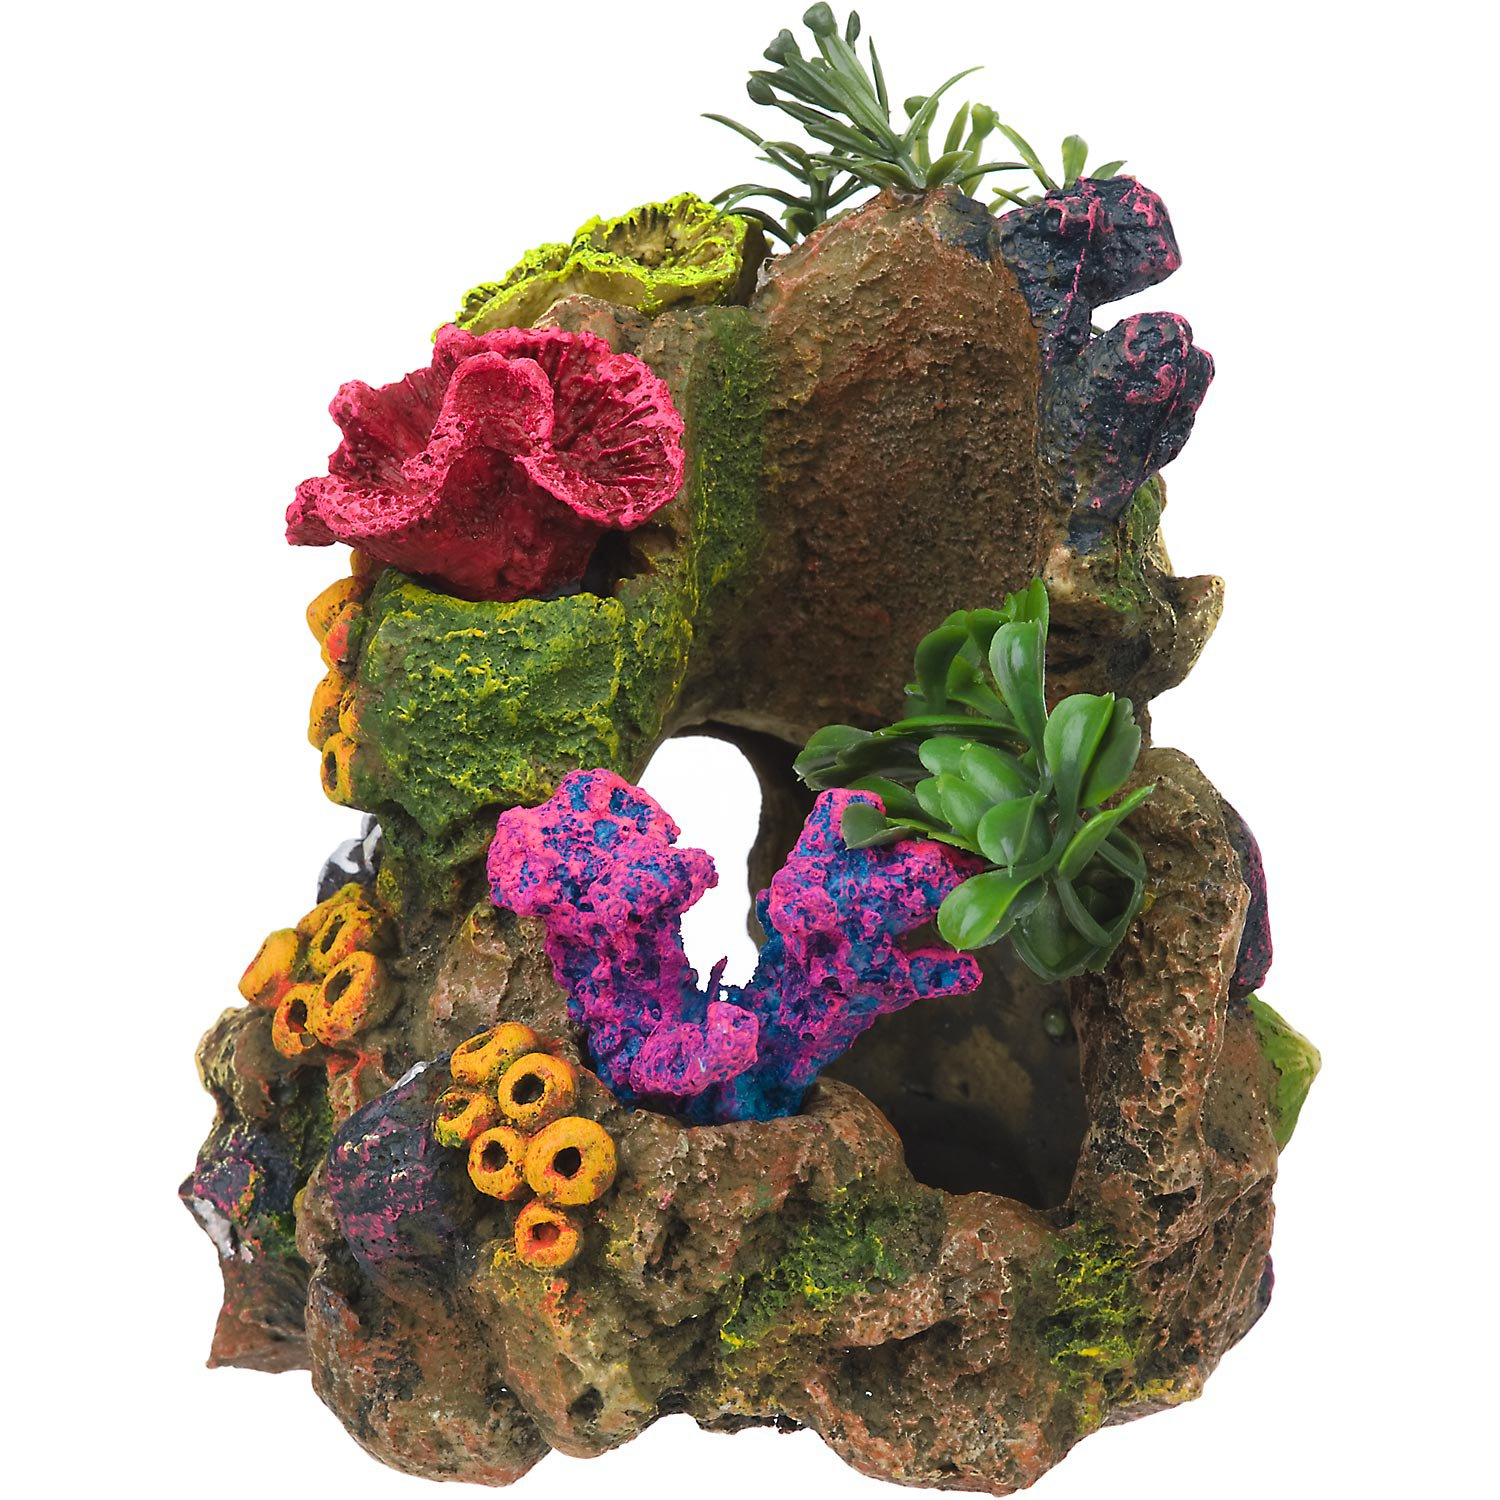 Rockgarden resin aquarium coral garden petco for Aquarium decoration ornaments